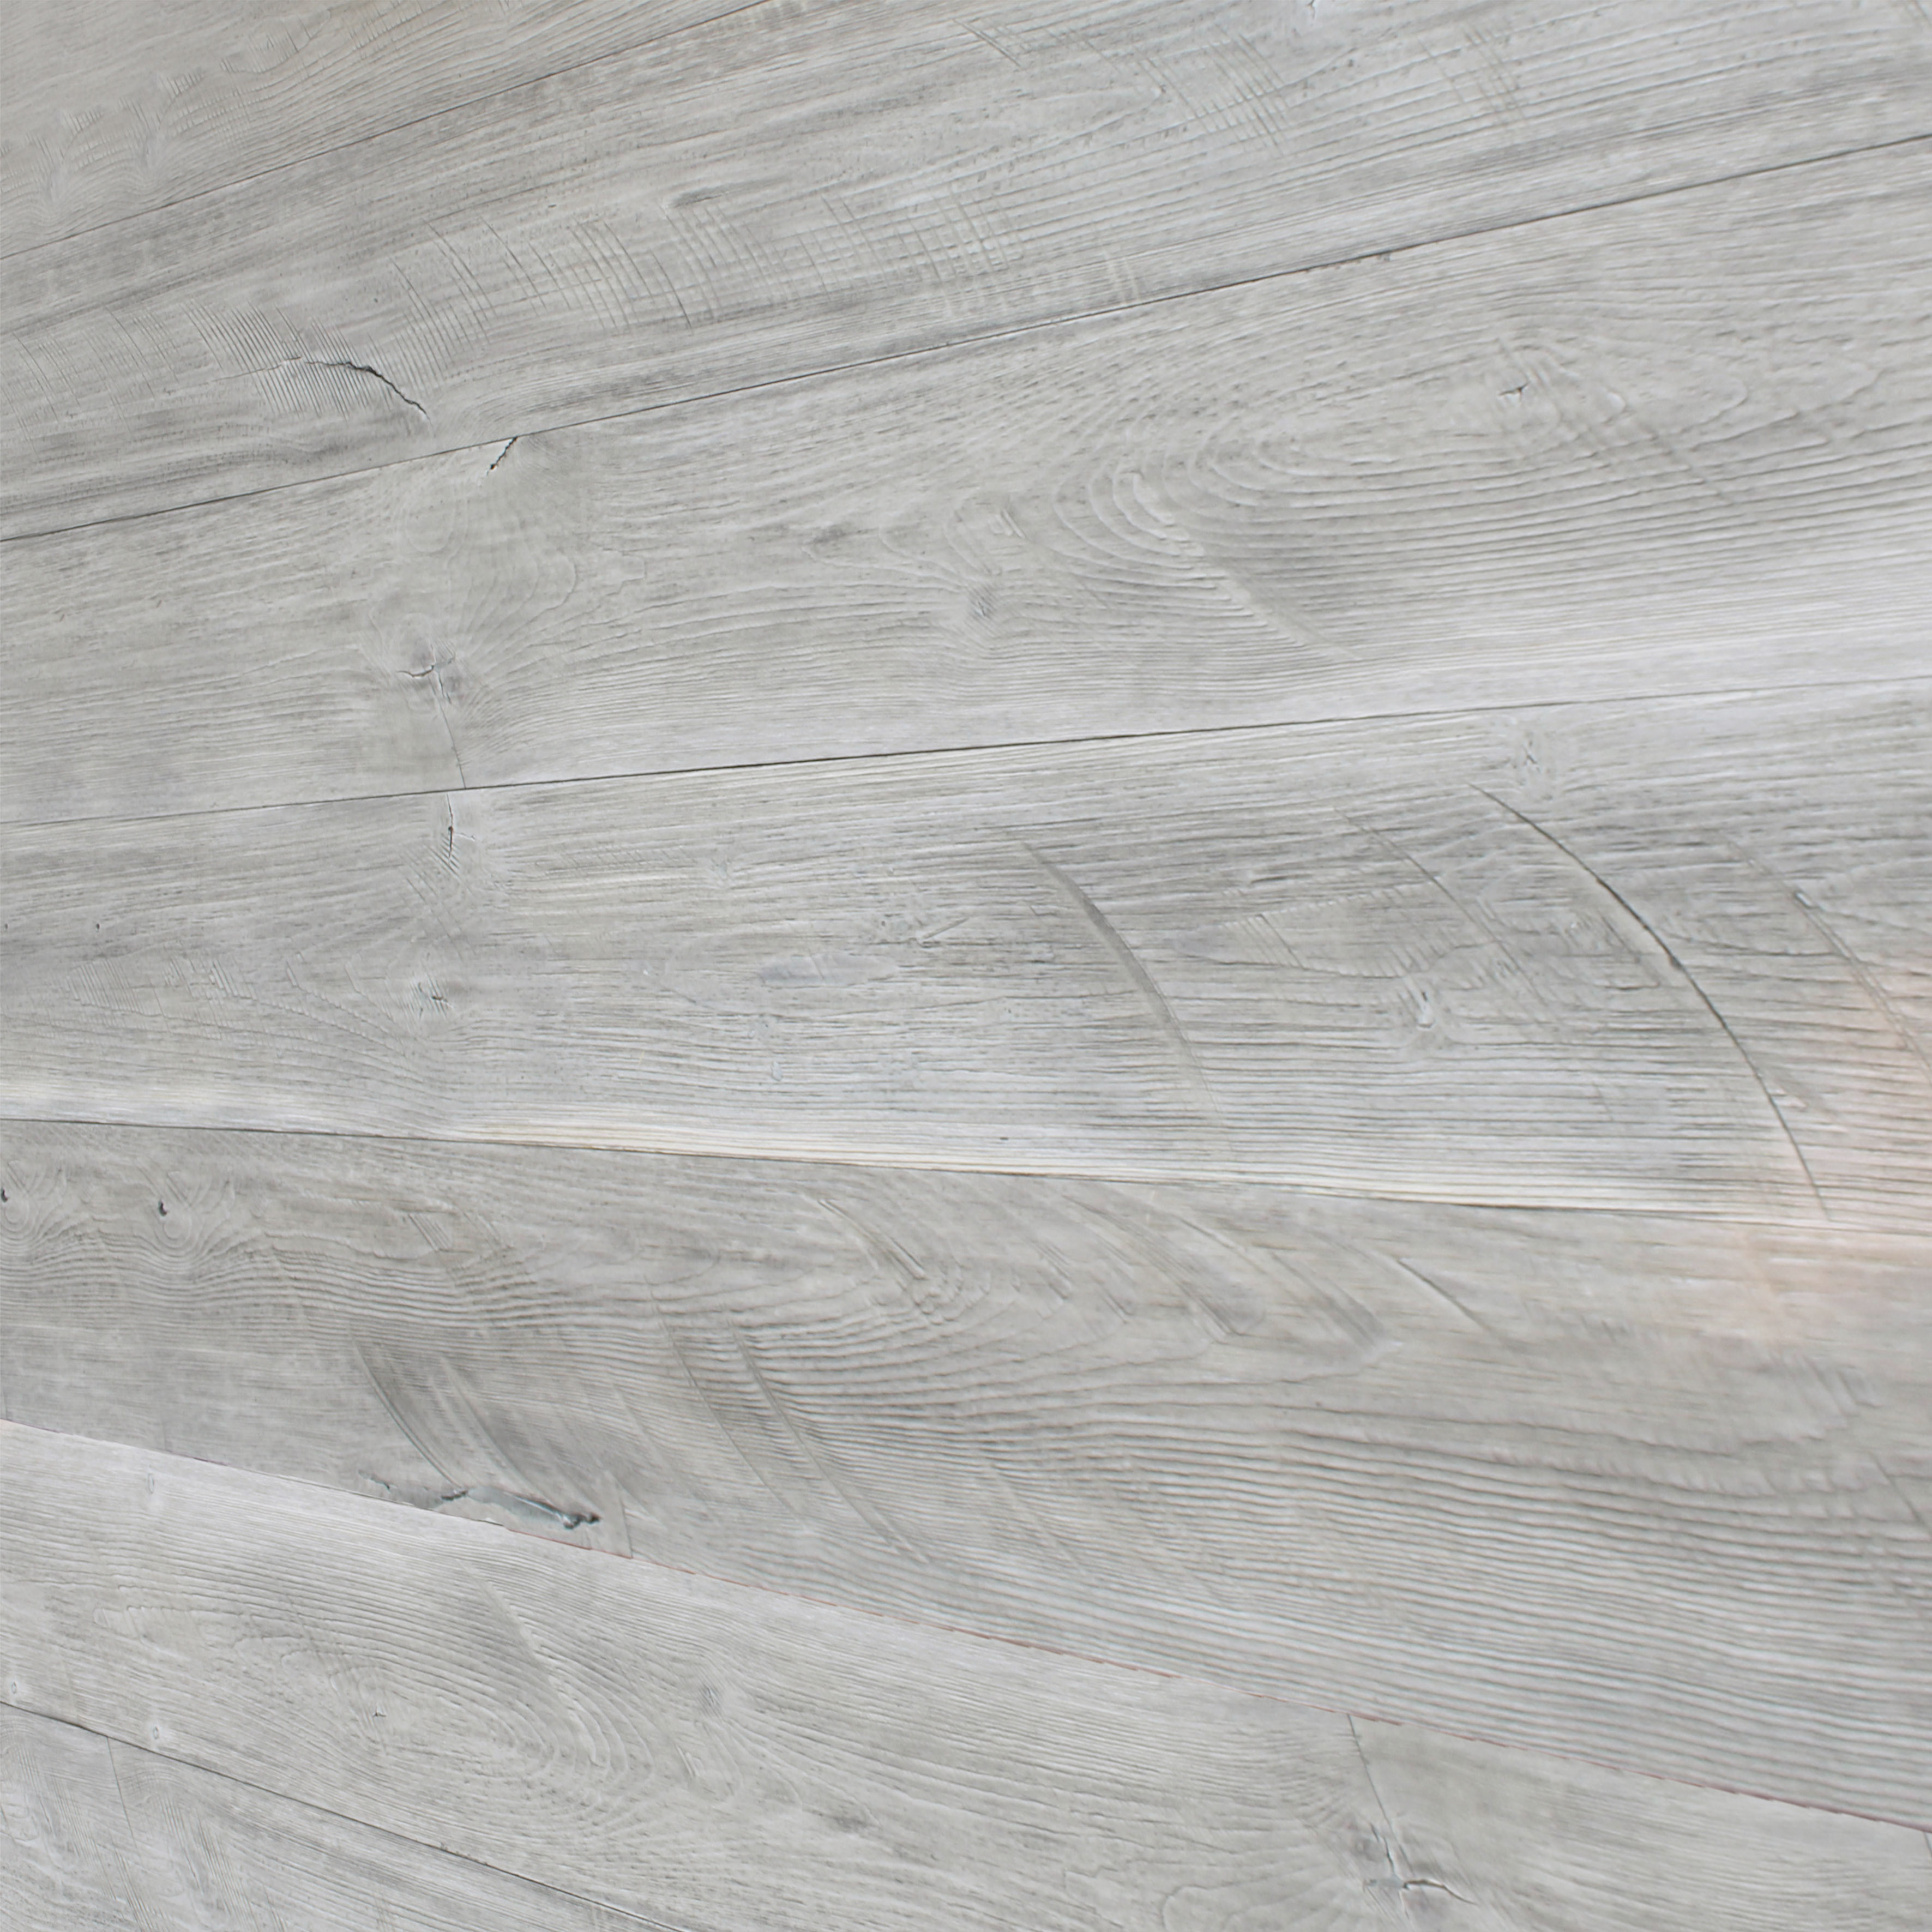 Saw Mark Light Grey|WP-020C|Peel & Stick DIY Rustic Weathered Shiplap Real Wood Wall Plank or Panel